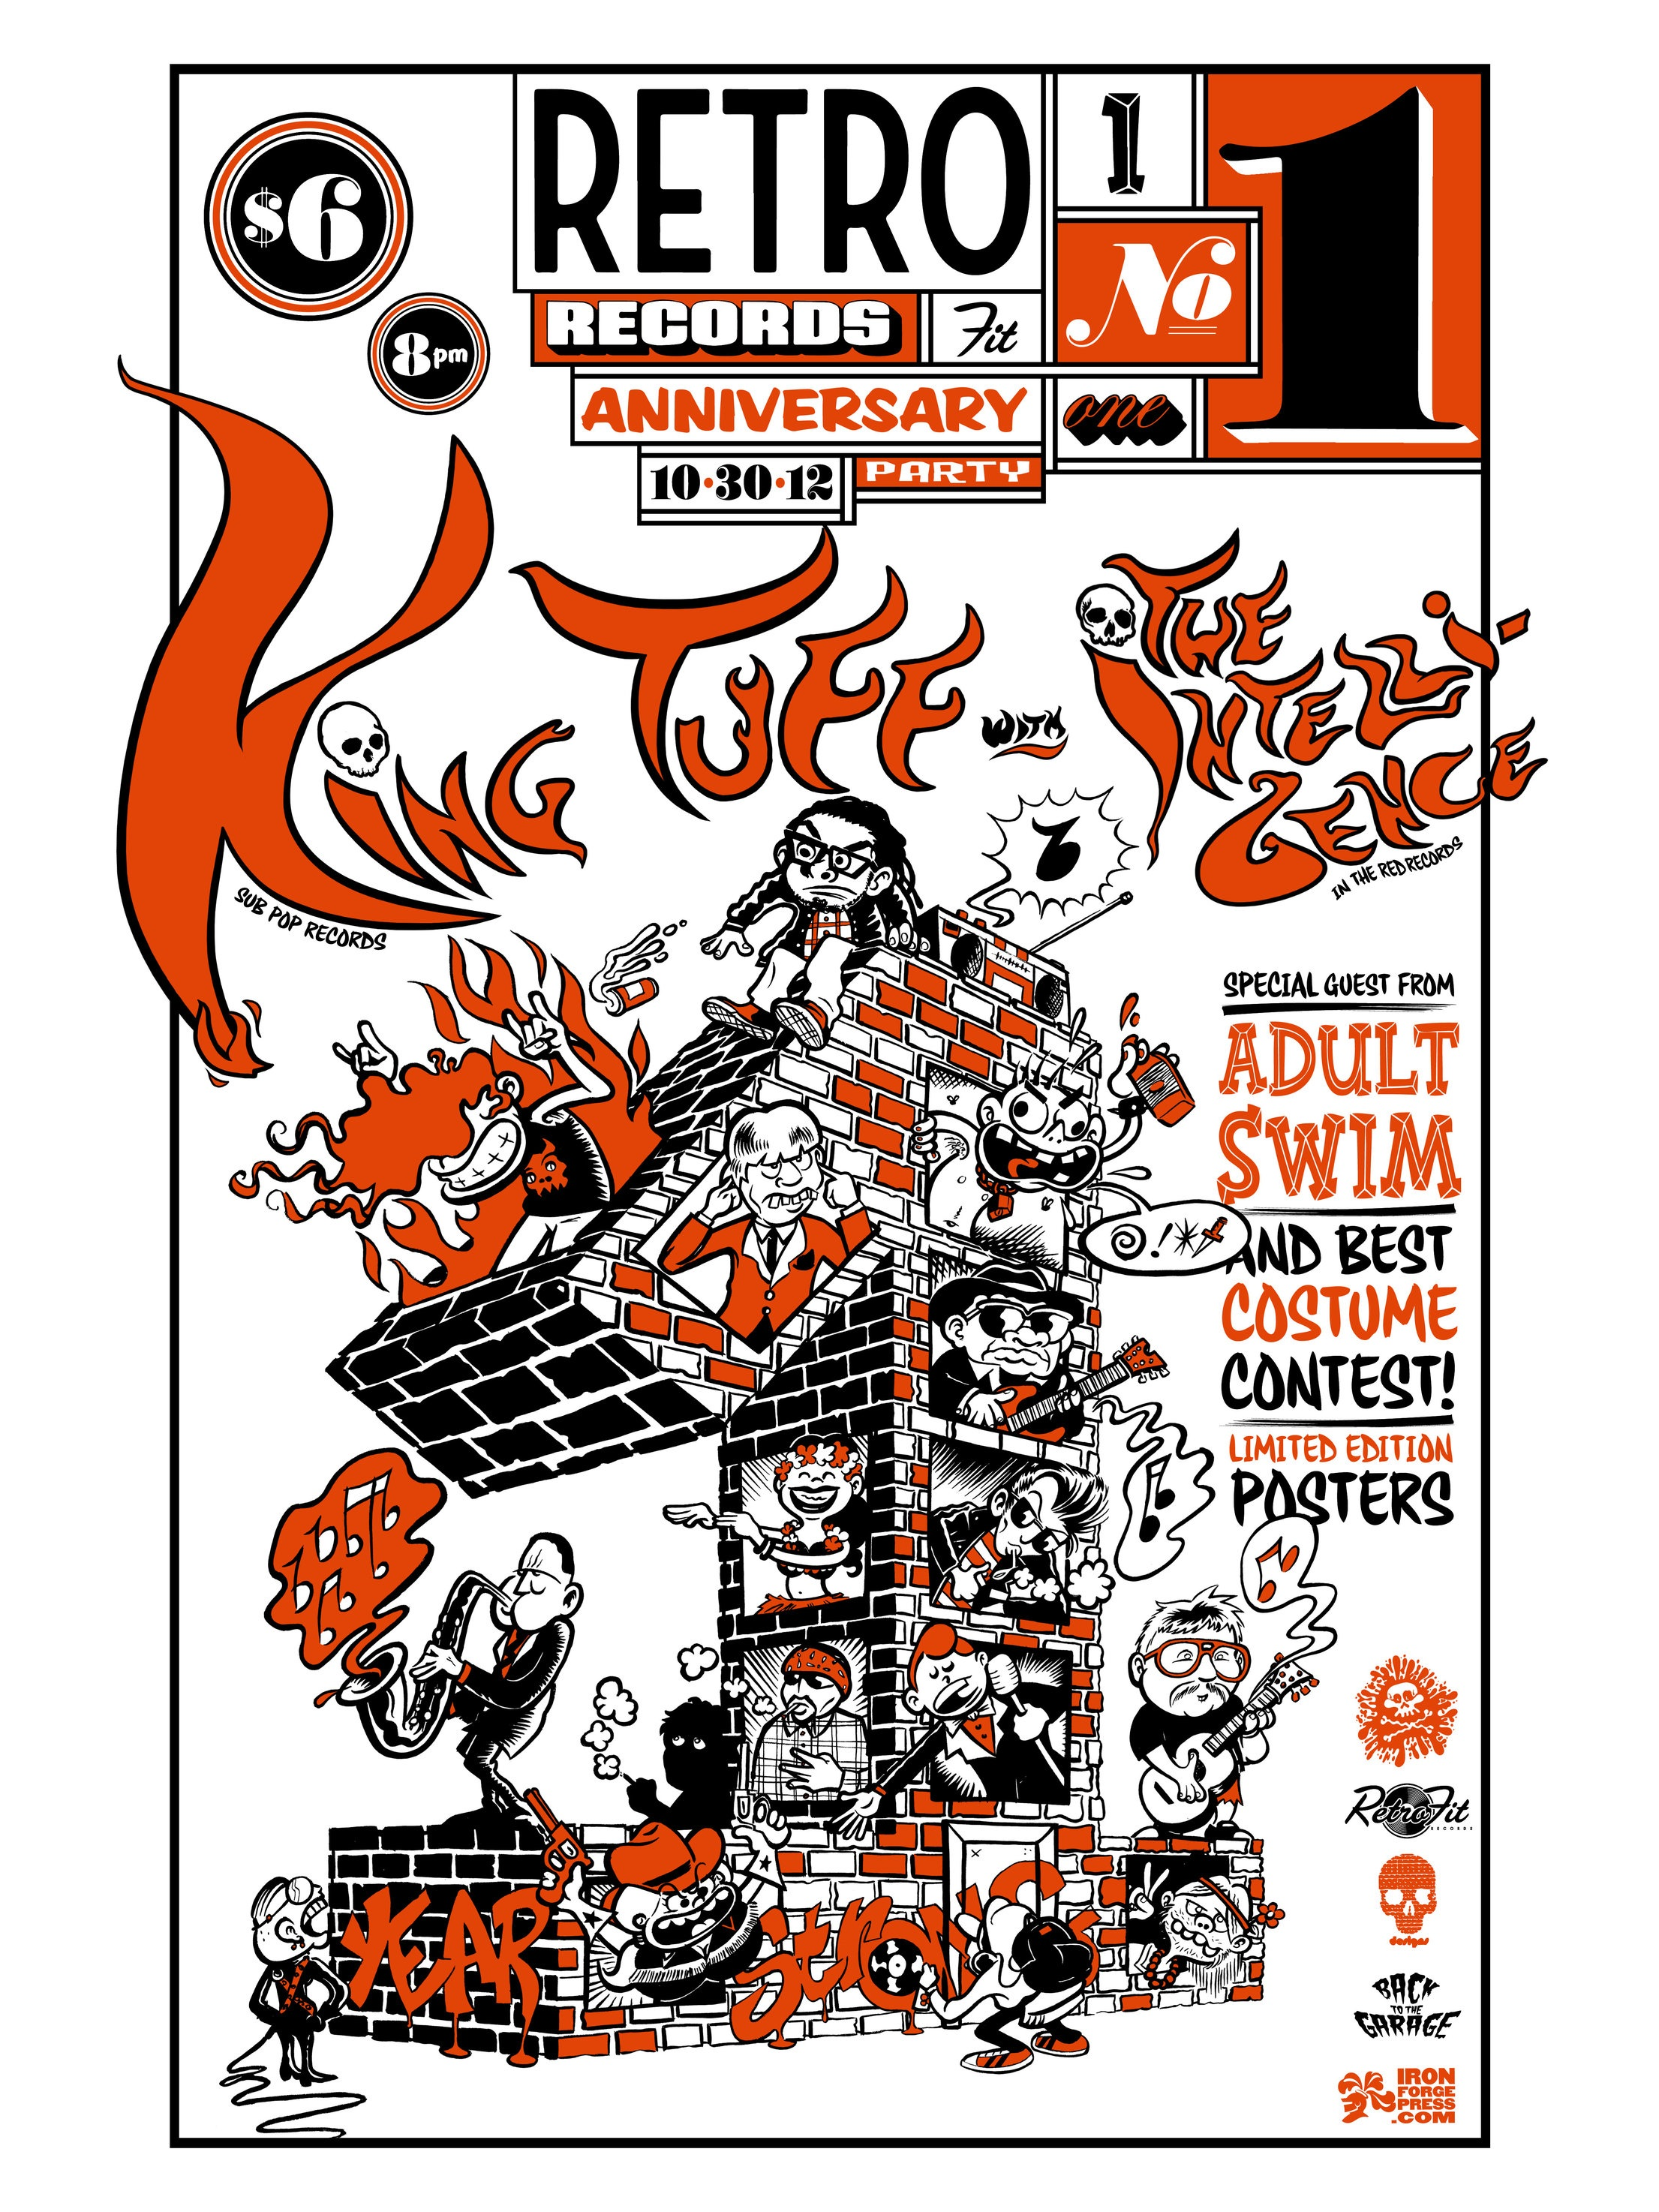 RETROFIT RECORDS 1 YEAR ANNIVERSARY POSTER